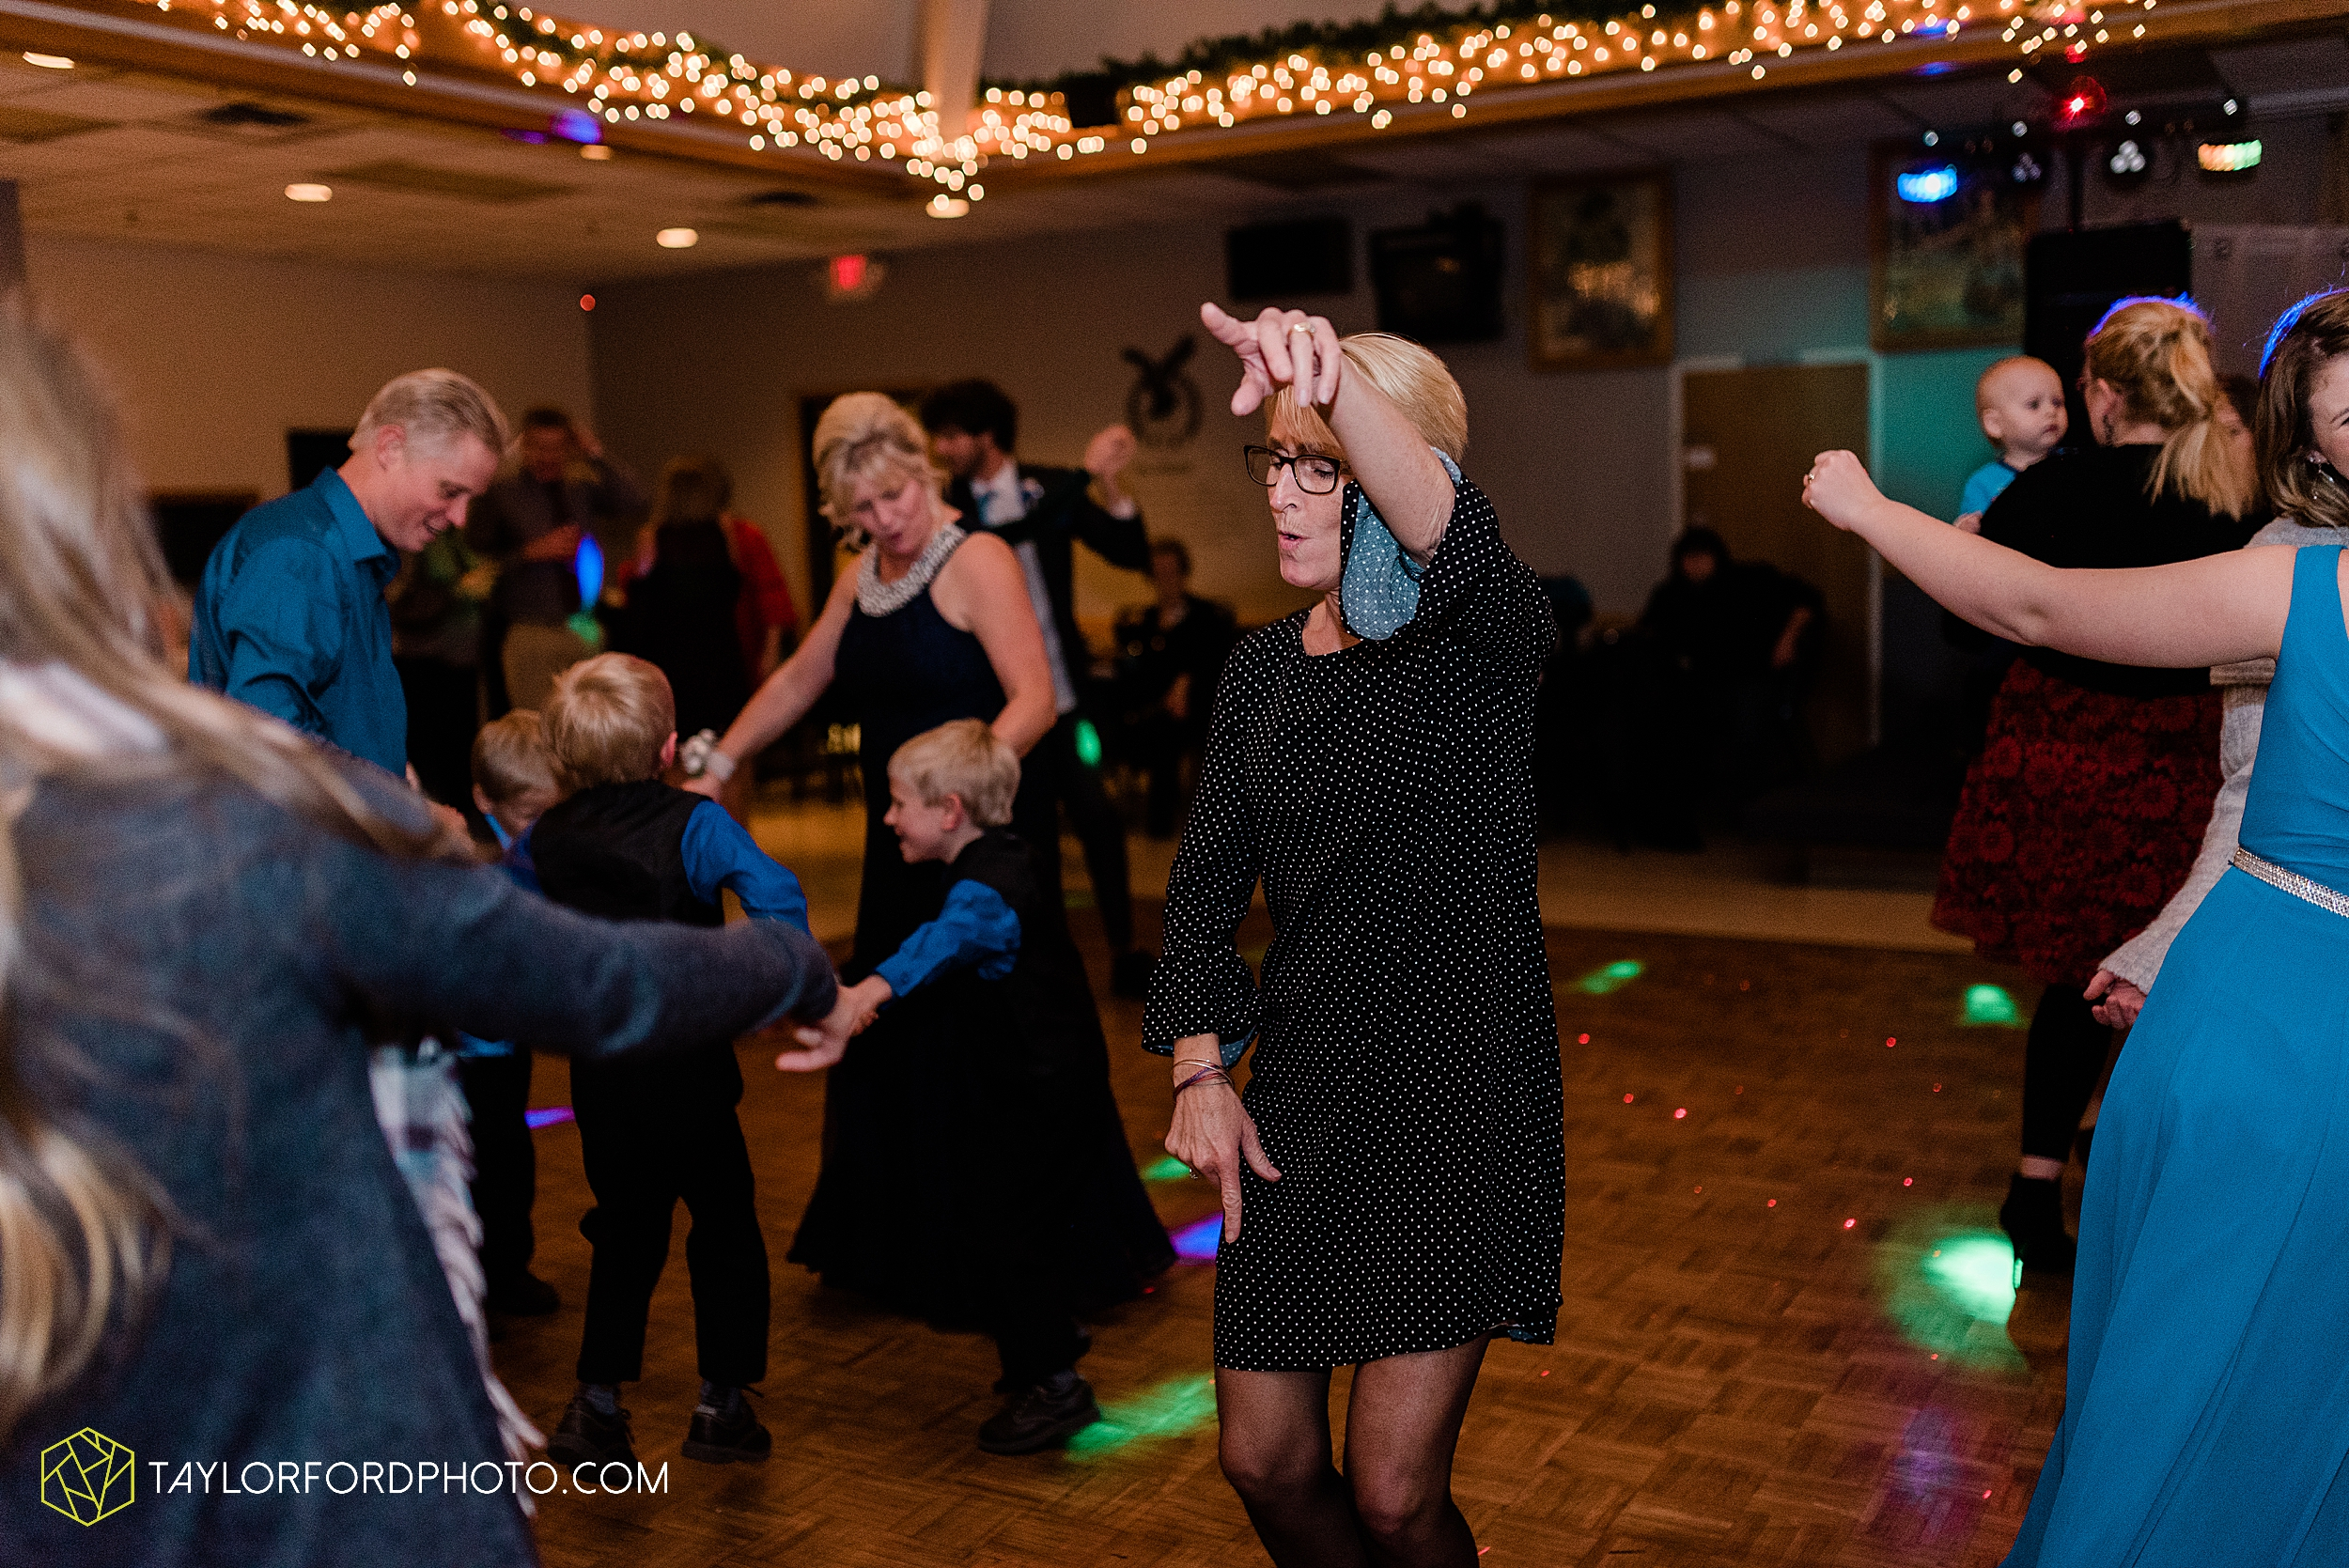 pleasant-view-church-christmas-celina-fraternal-order-of-eagles-reception-wedding-wren-willshire-van-wert-ohio-photography-taylor-ford-hirschy-photographer_2207.jpg